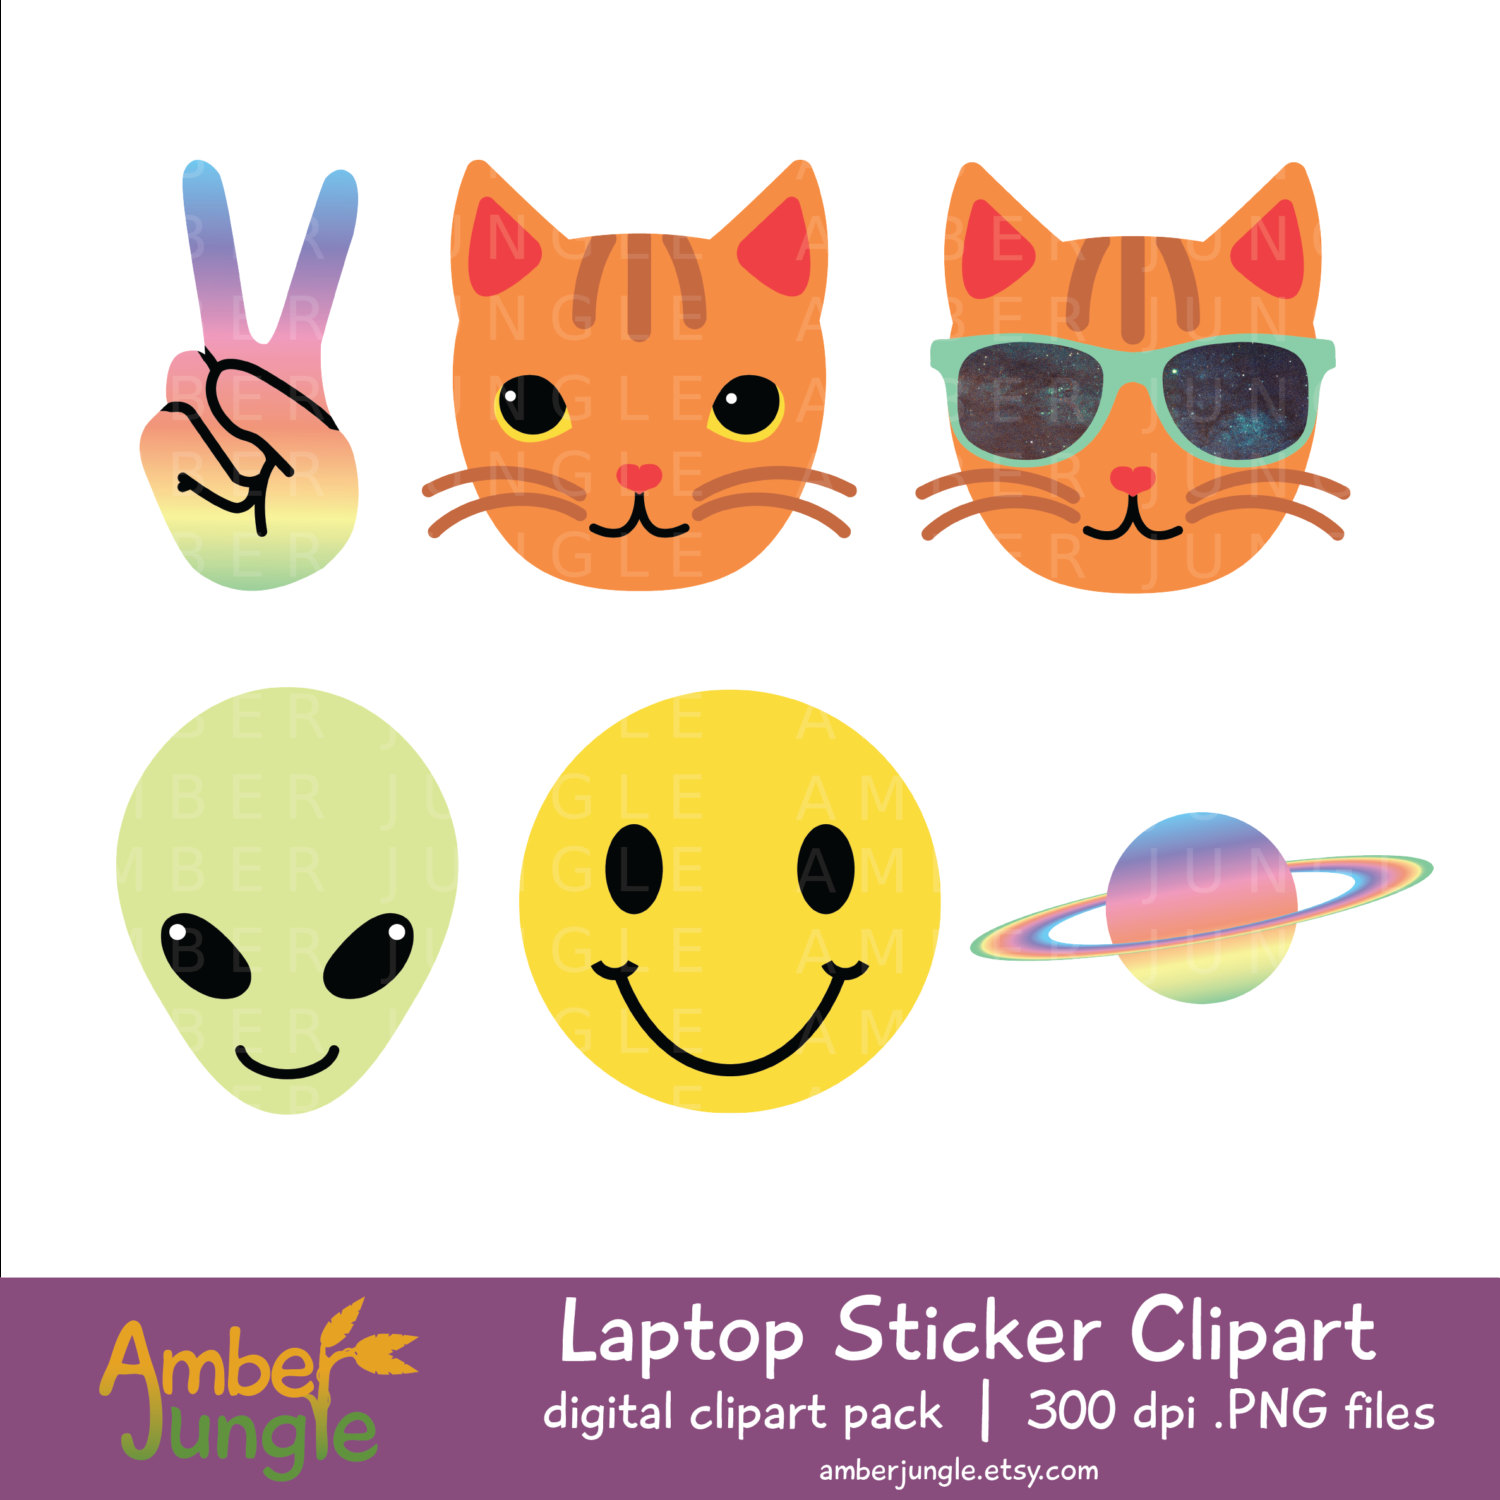 Alien clipart must Emoji This is Stickers Girl